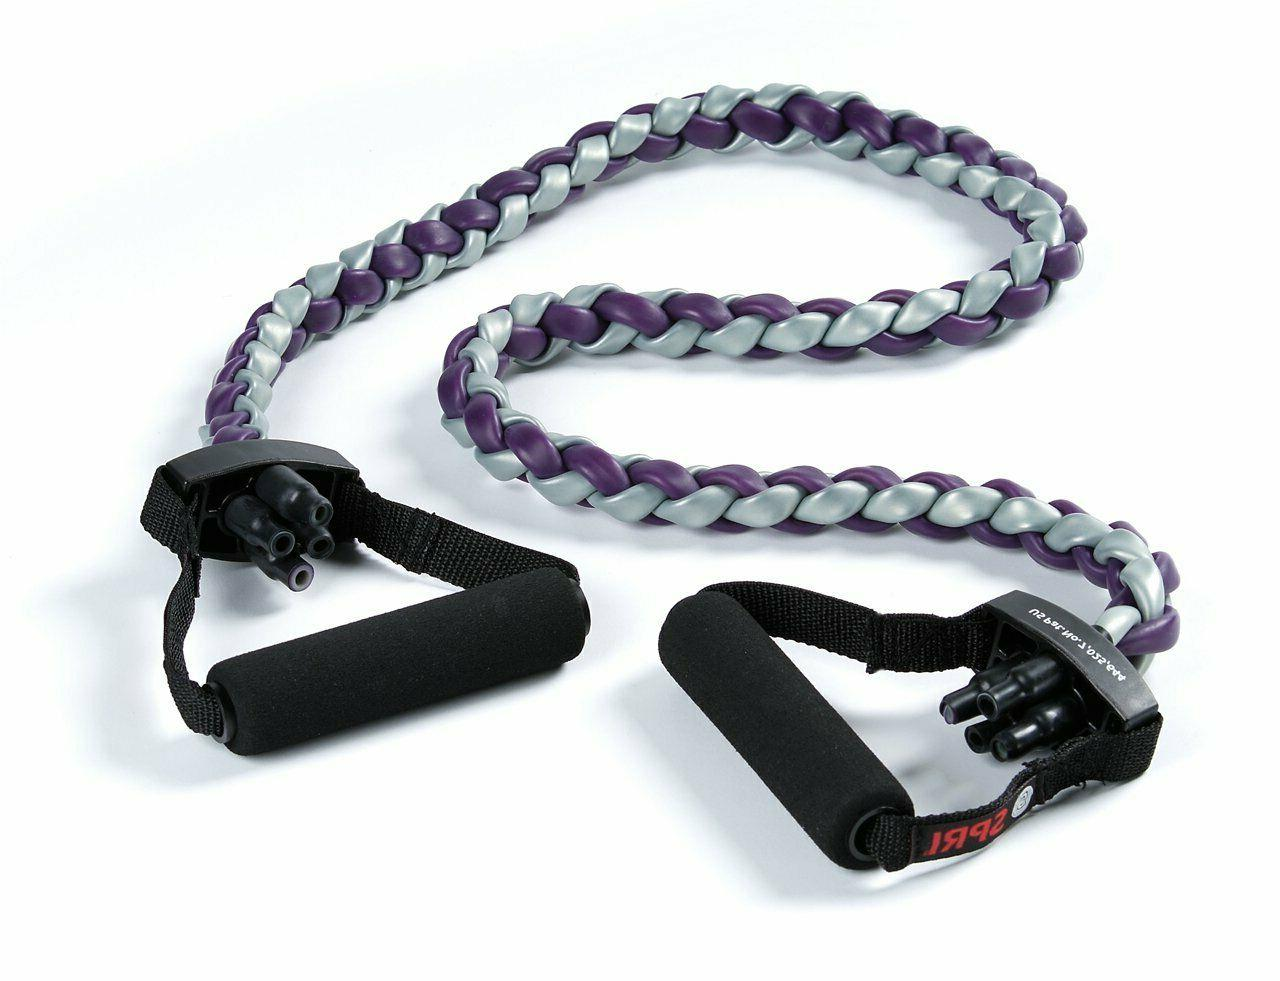 braided xertube resistance band exercise cord purple